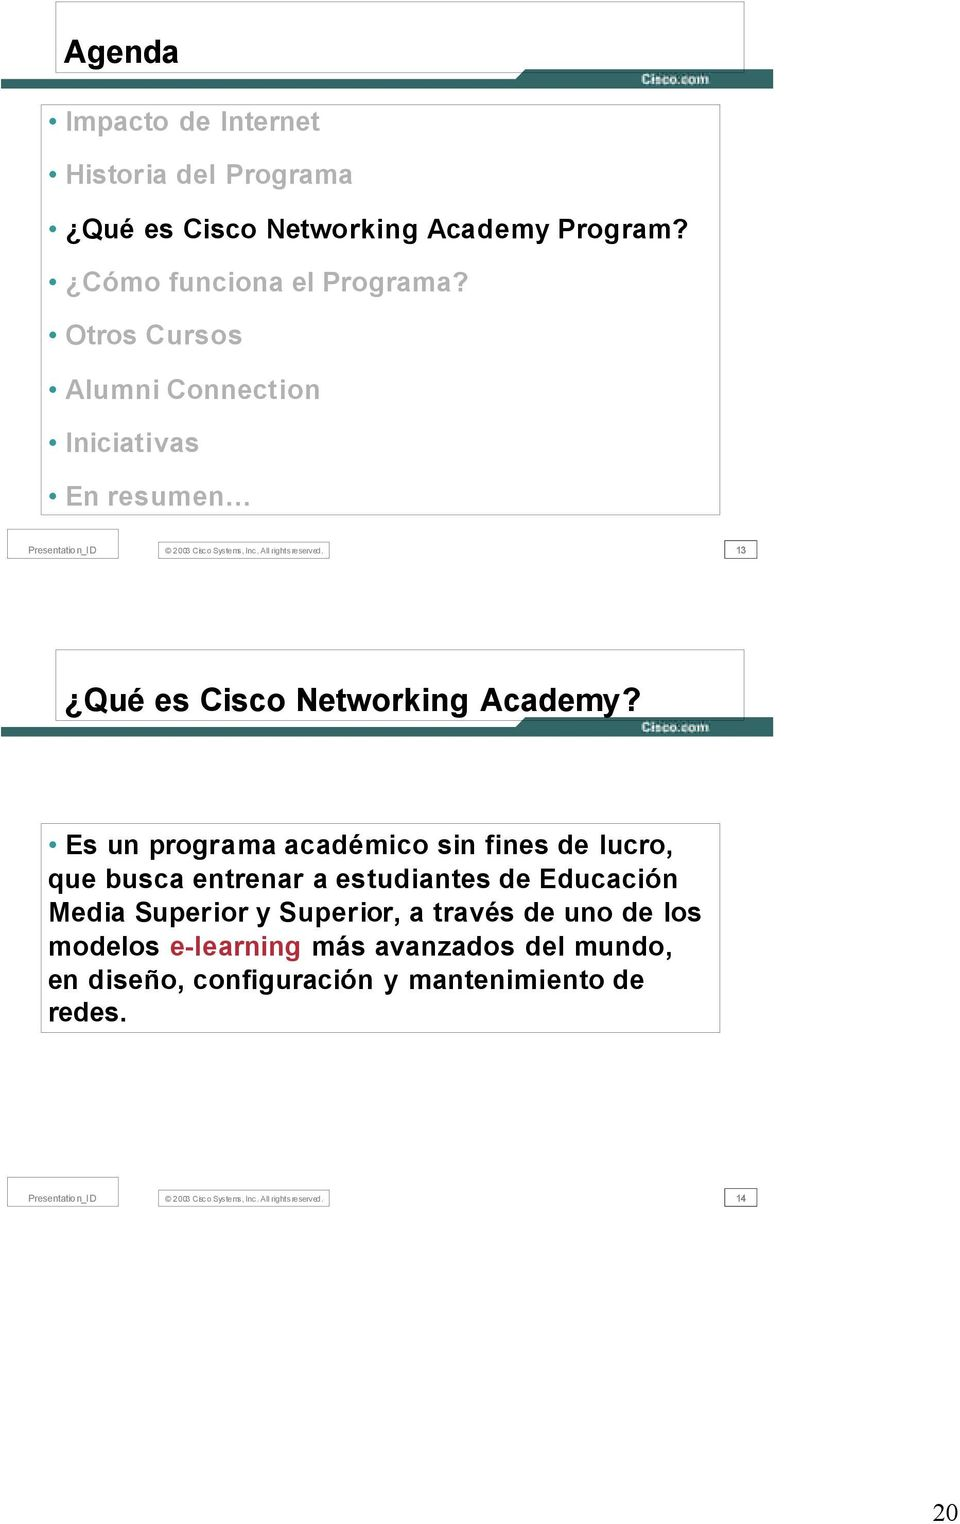 13 Qué es Cisco Networking Academy?